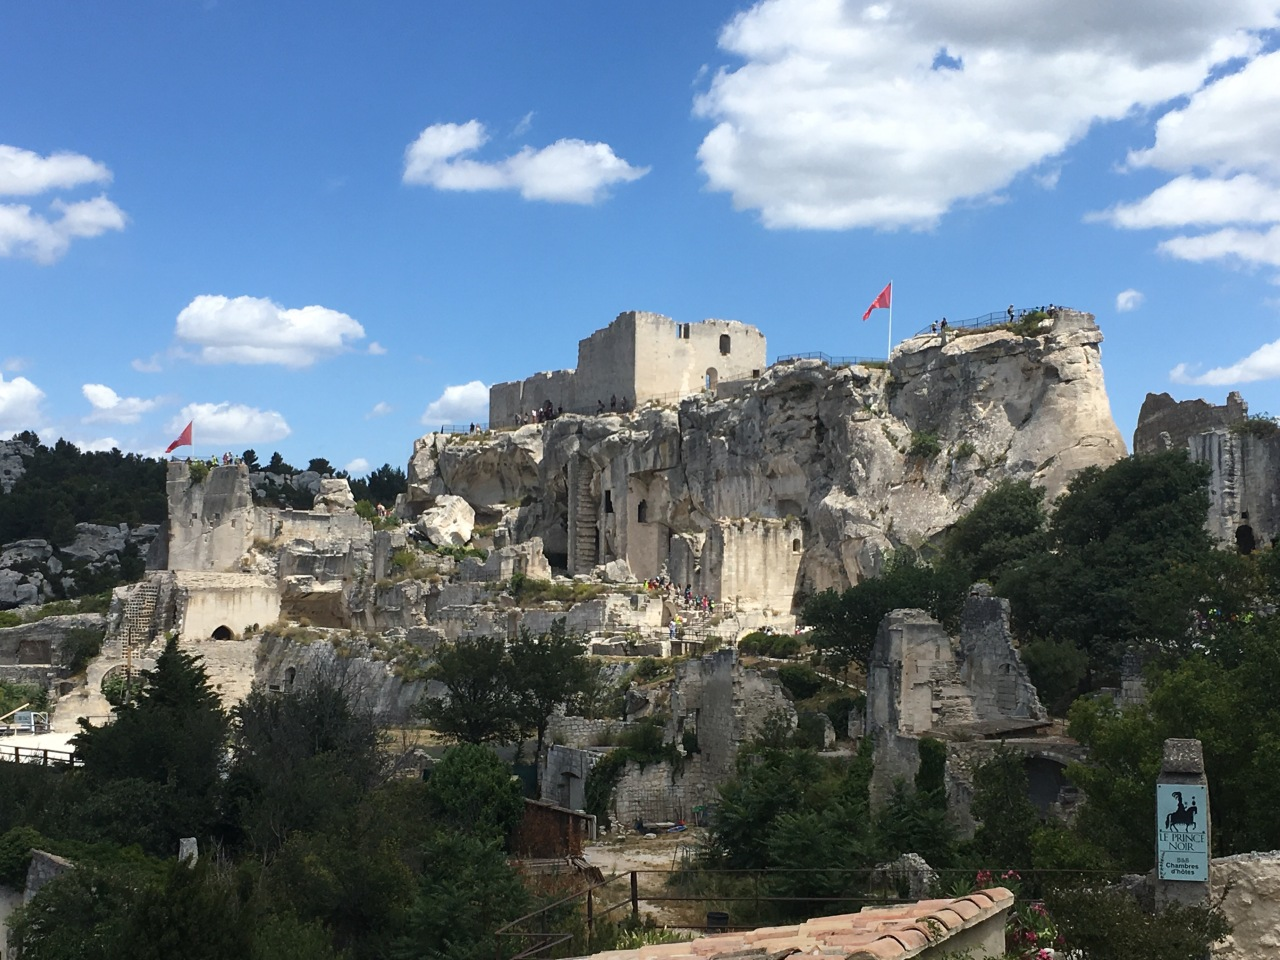 Treading in ancient footsteps at Les Baux-de-Provence